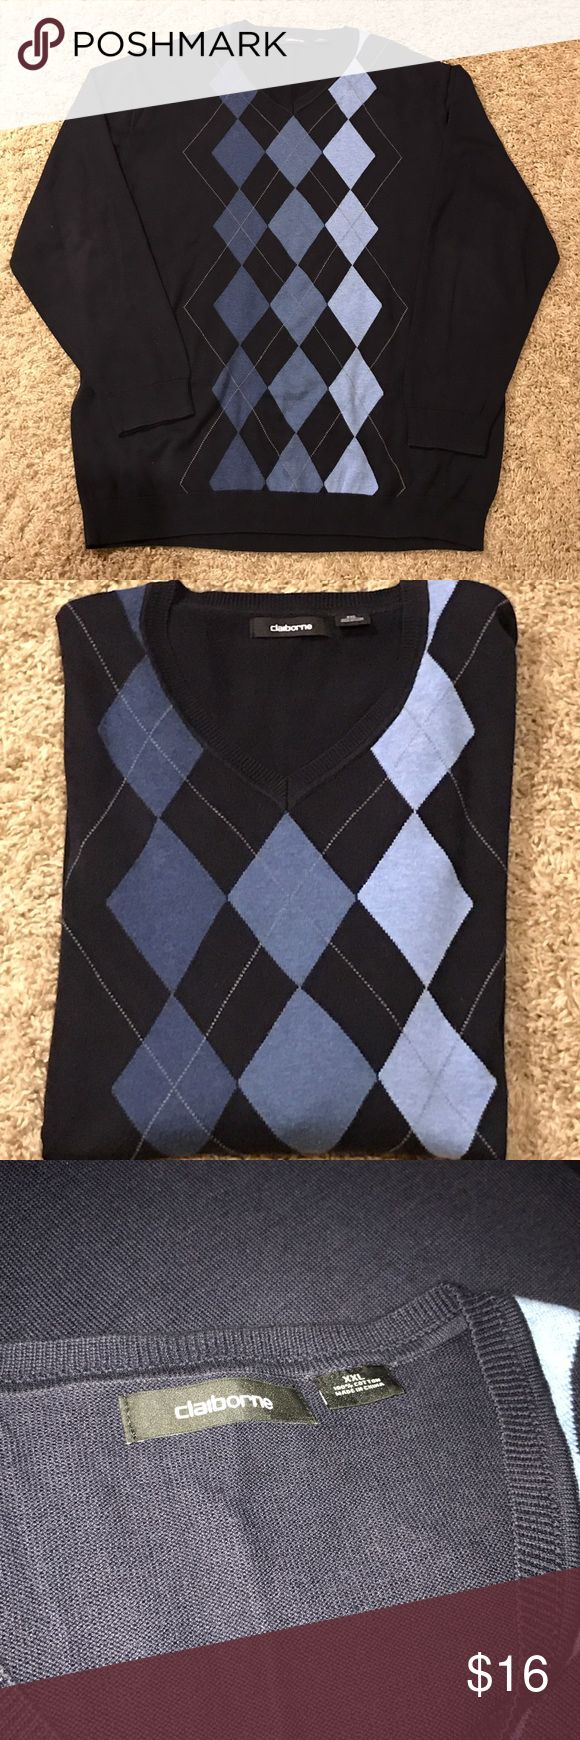 NWOT Liz Claiborne Navy blue argyle sweater New without tags navy blue and blue argyle sweater.   Great for any occasion, wear with jeans or a pair of khakis. Made by Liz Claiborne size XXL. Liz Claiborne Sweaters V-Neck